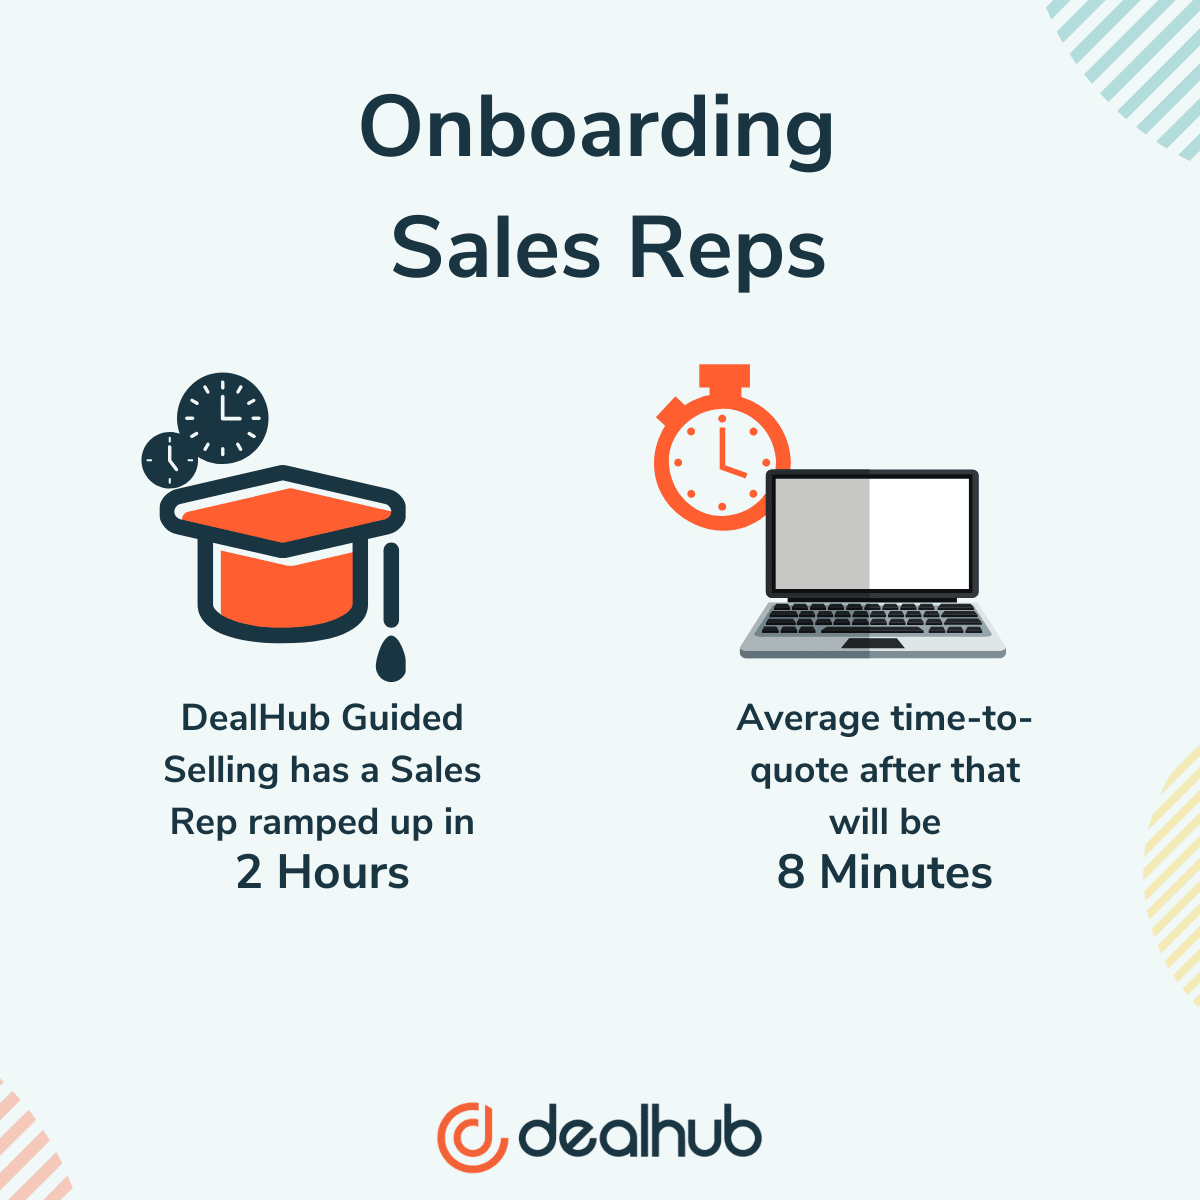 Improve Training for Current and Onboarded Sales Reps